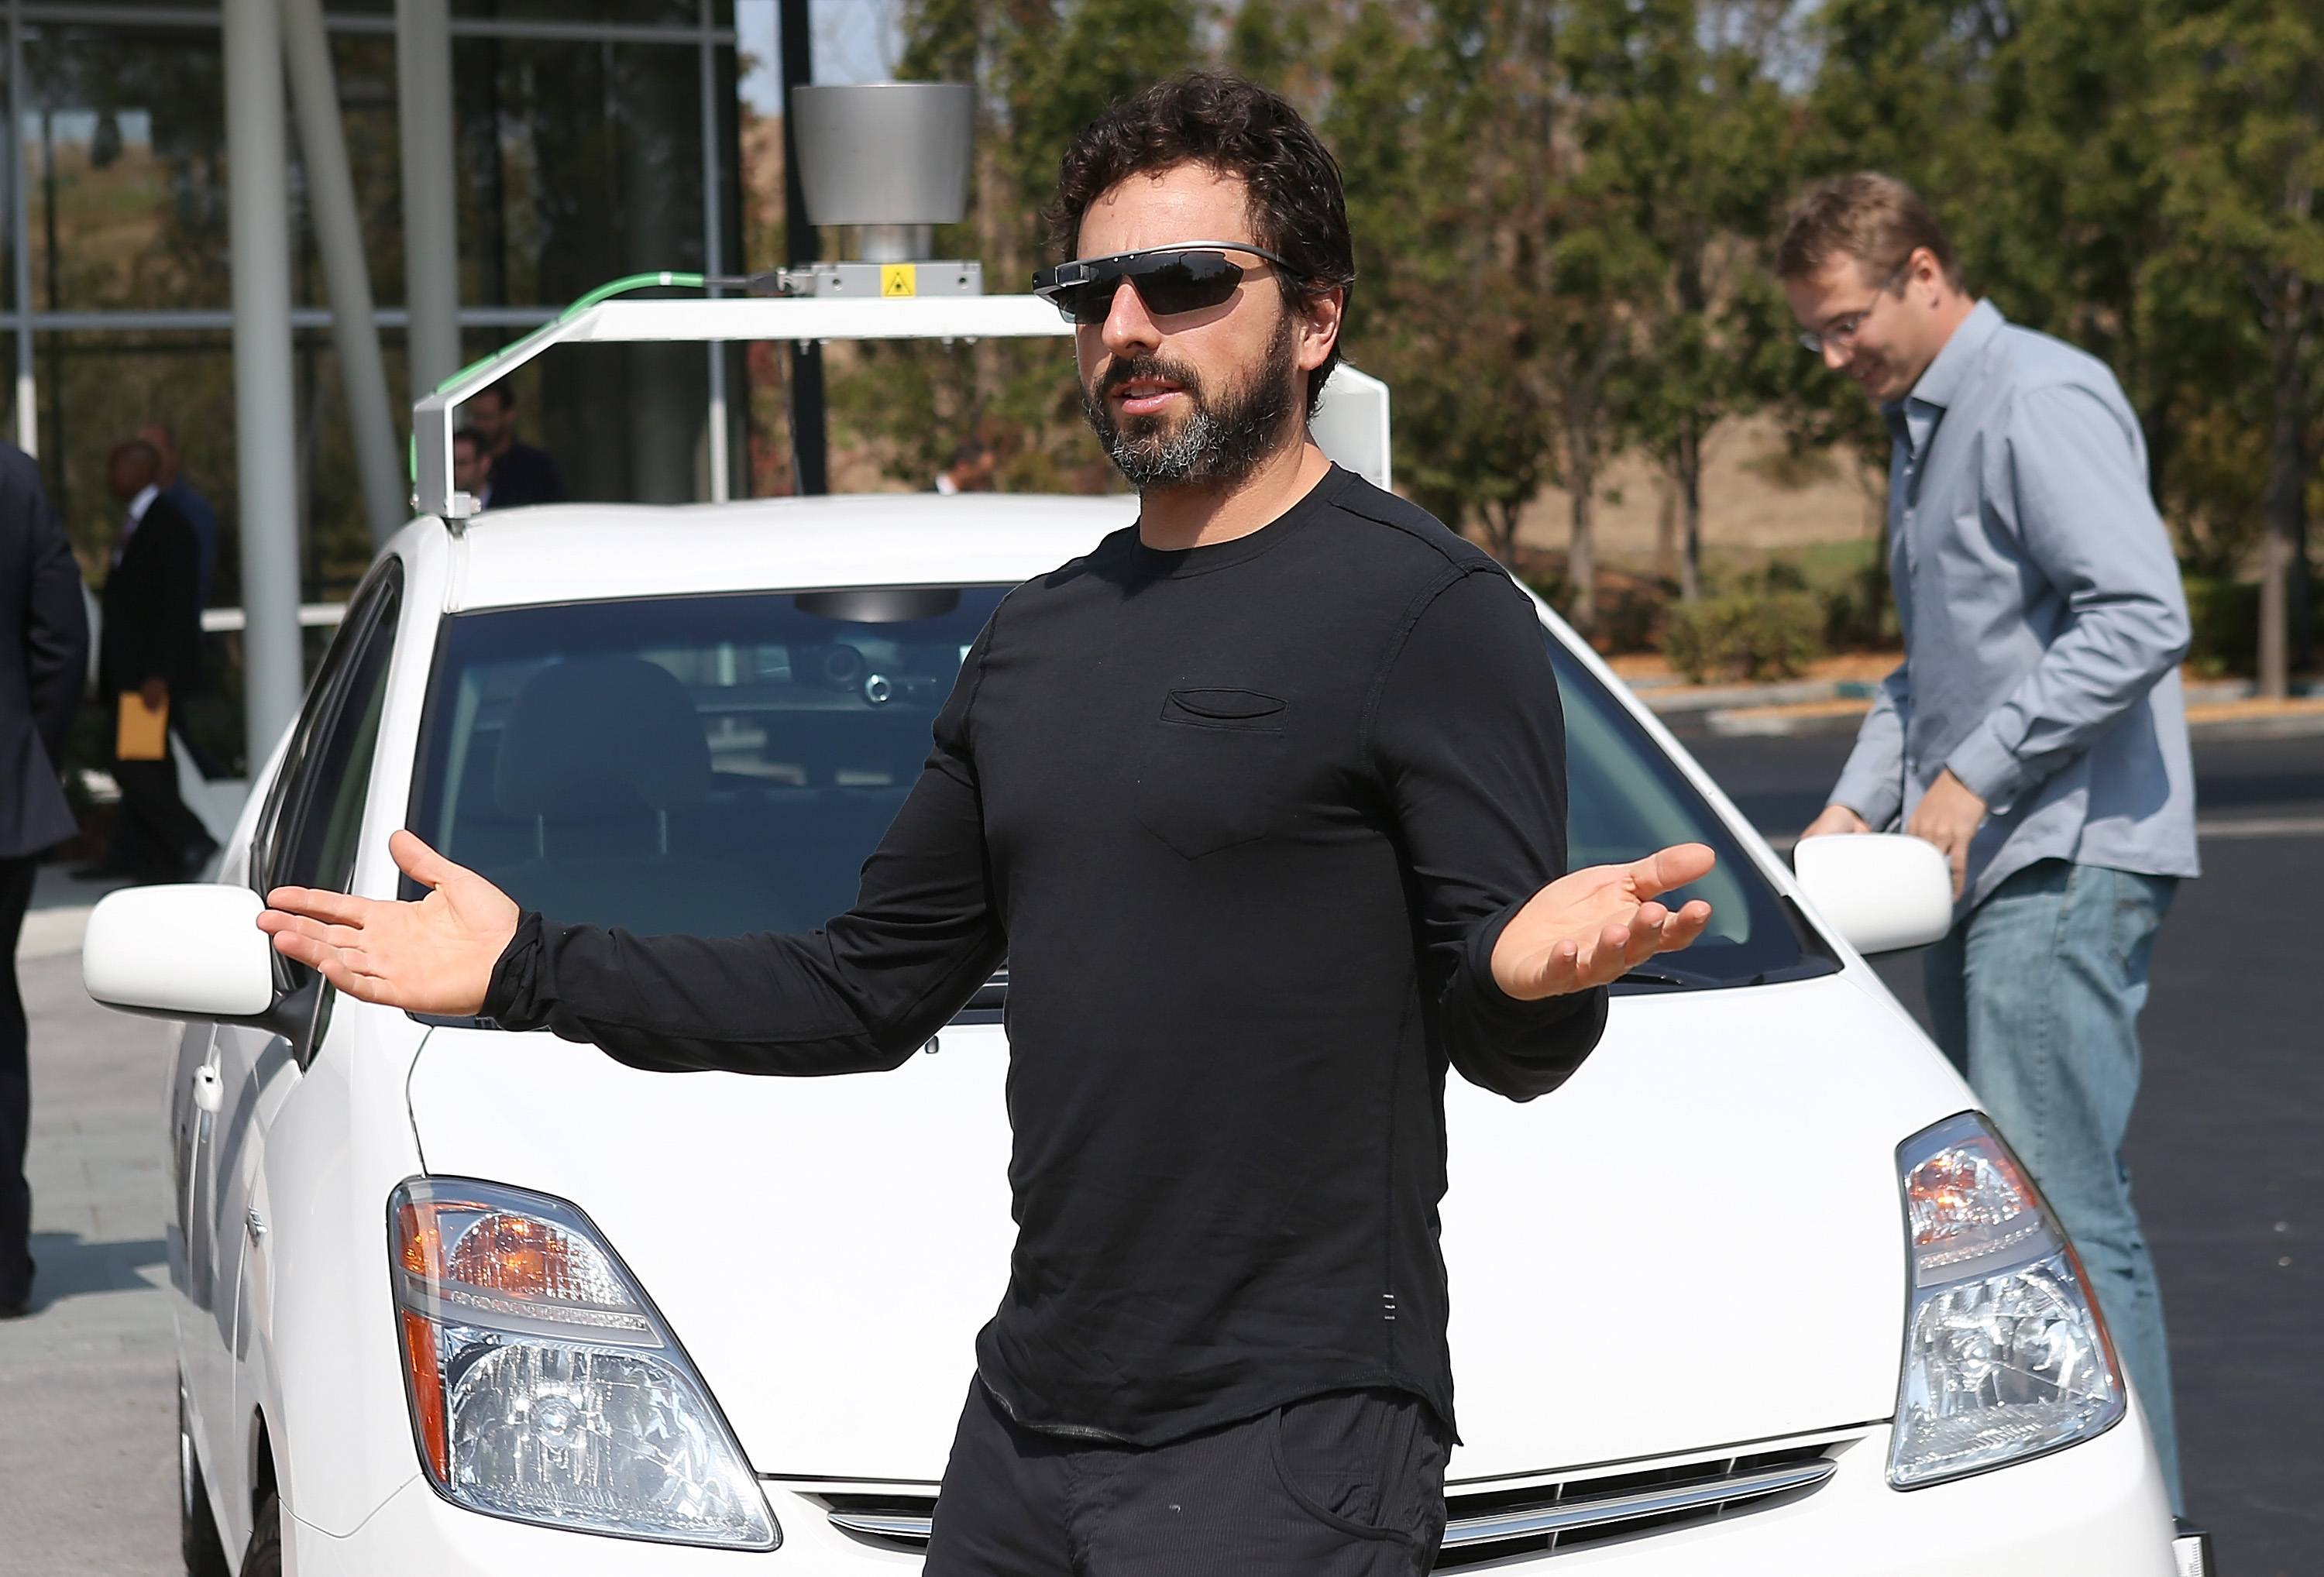 Google co-founder Sergey Brin stands in front of a self-driving car at the Google headquarters